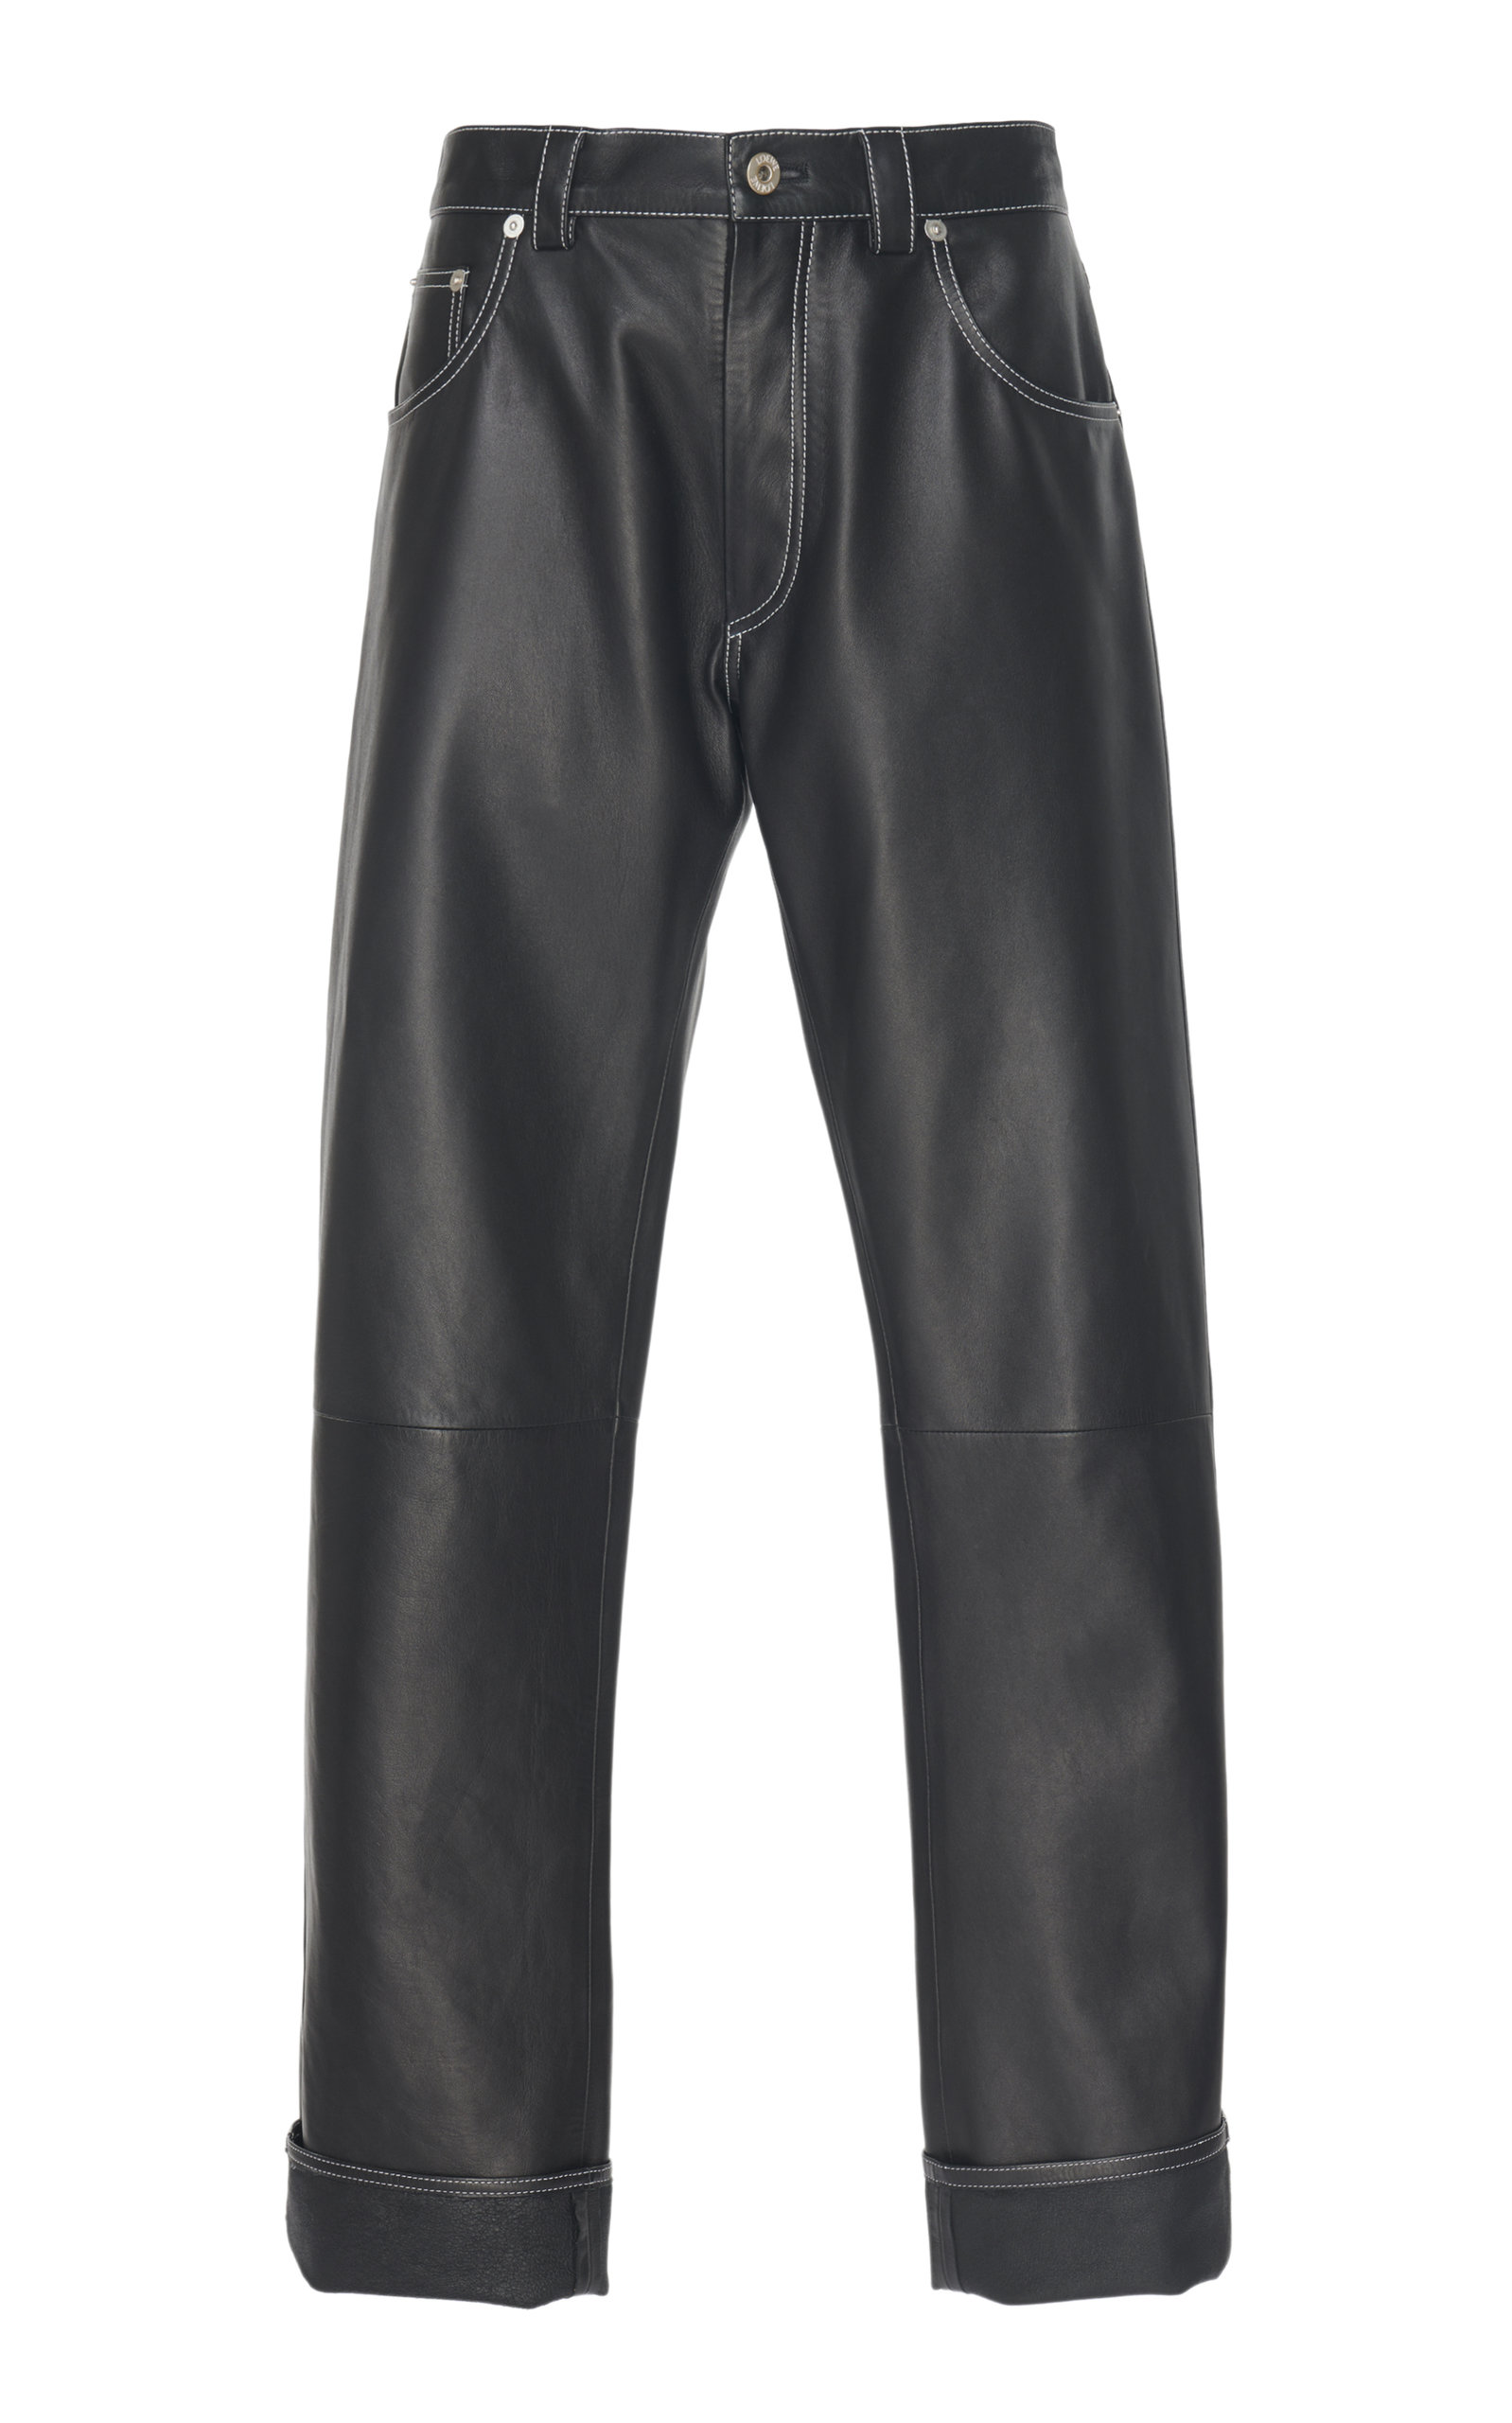 Leather Straight-Leg Pants by Loewe, available on modaoperandi.com for $2105 Kendall Jenner Pants Exact Product